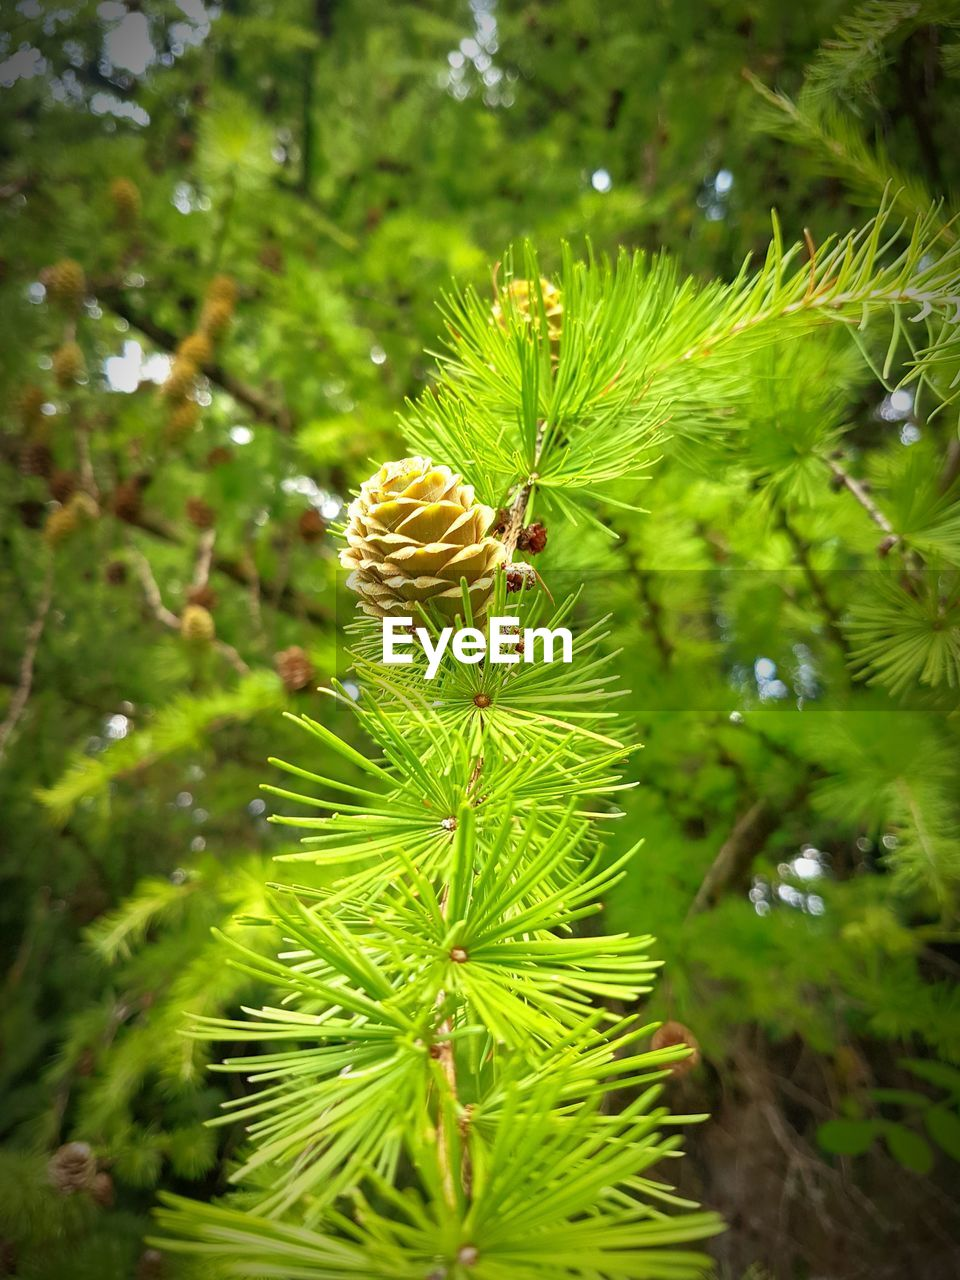 plant, green color, growth, beauty in nature, close-up, nature, tree, day, no people, focus on foreground, freshness, plant part, pine tree, selective focus, flower, leaf, outdoors, vulnerability, fragility, land, coniferous tree, needle - plant part